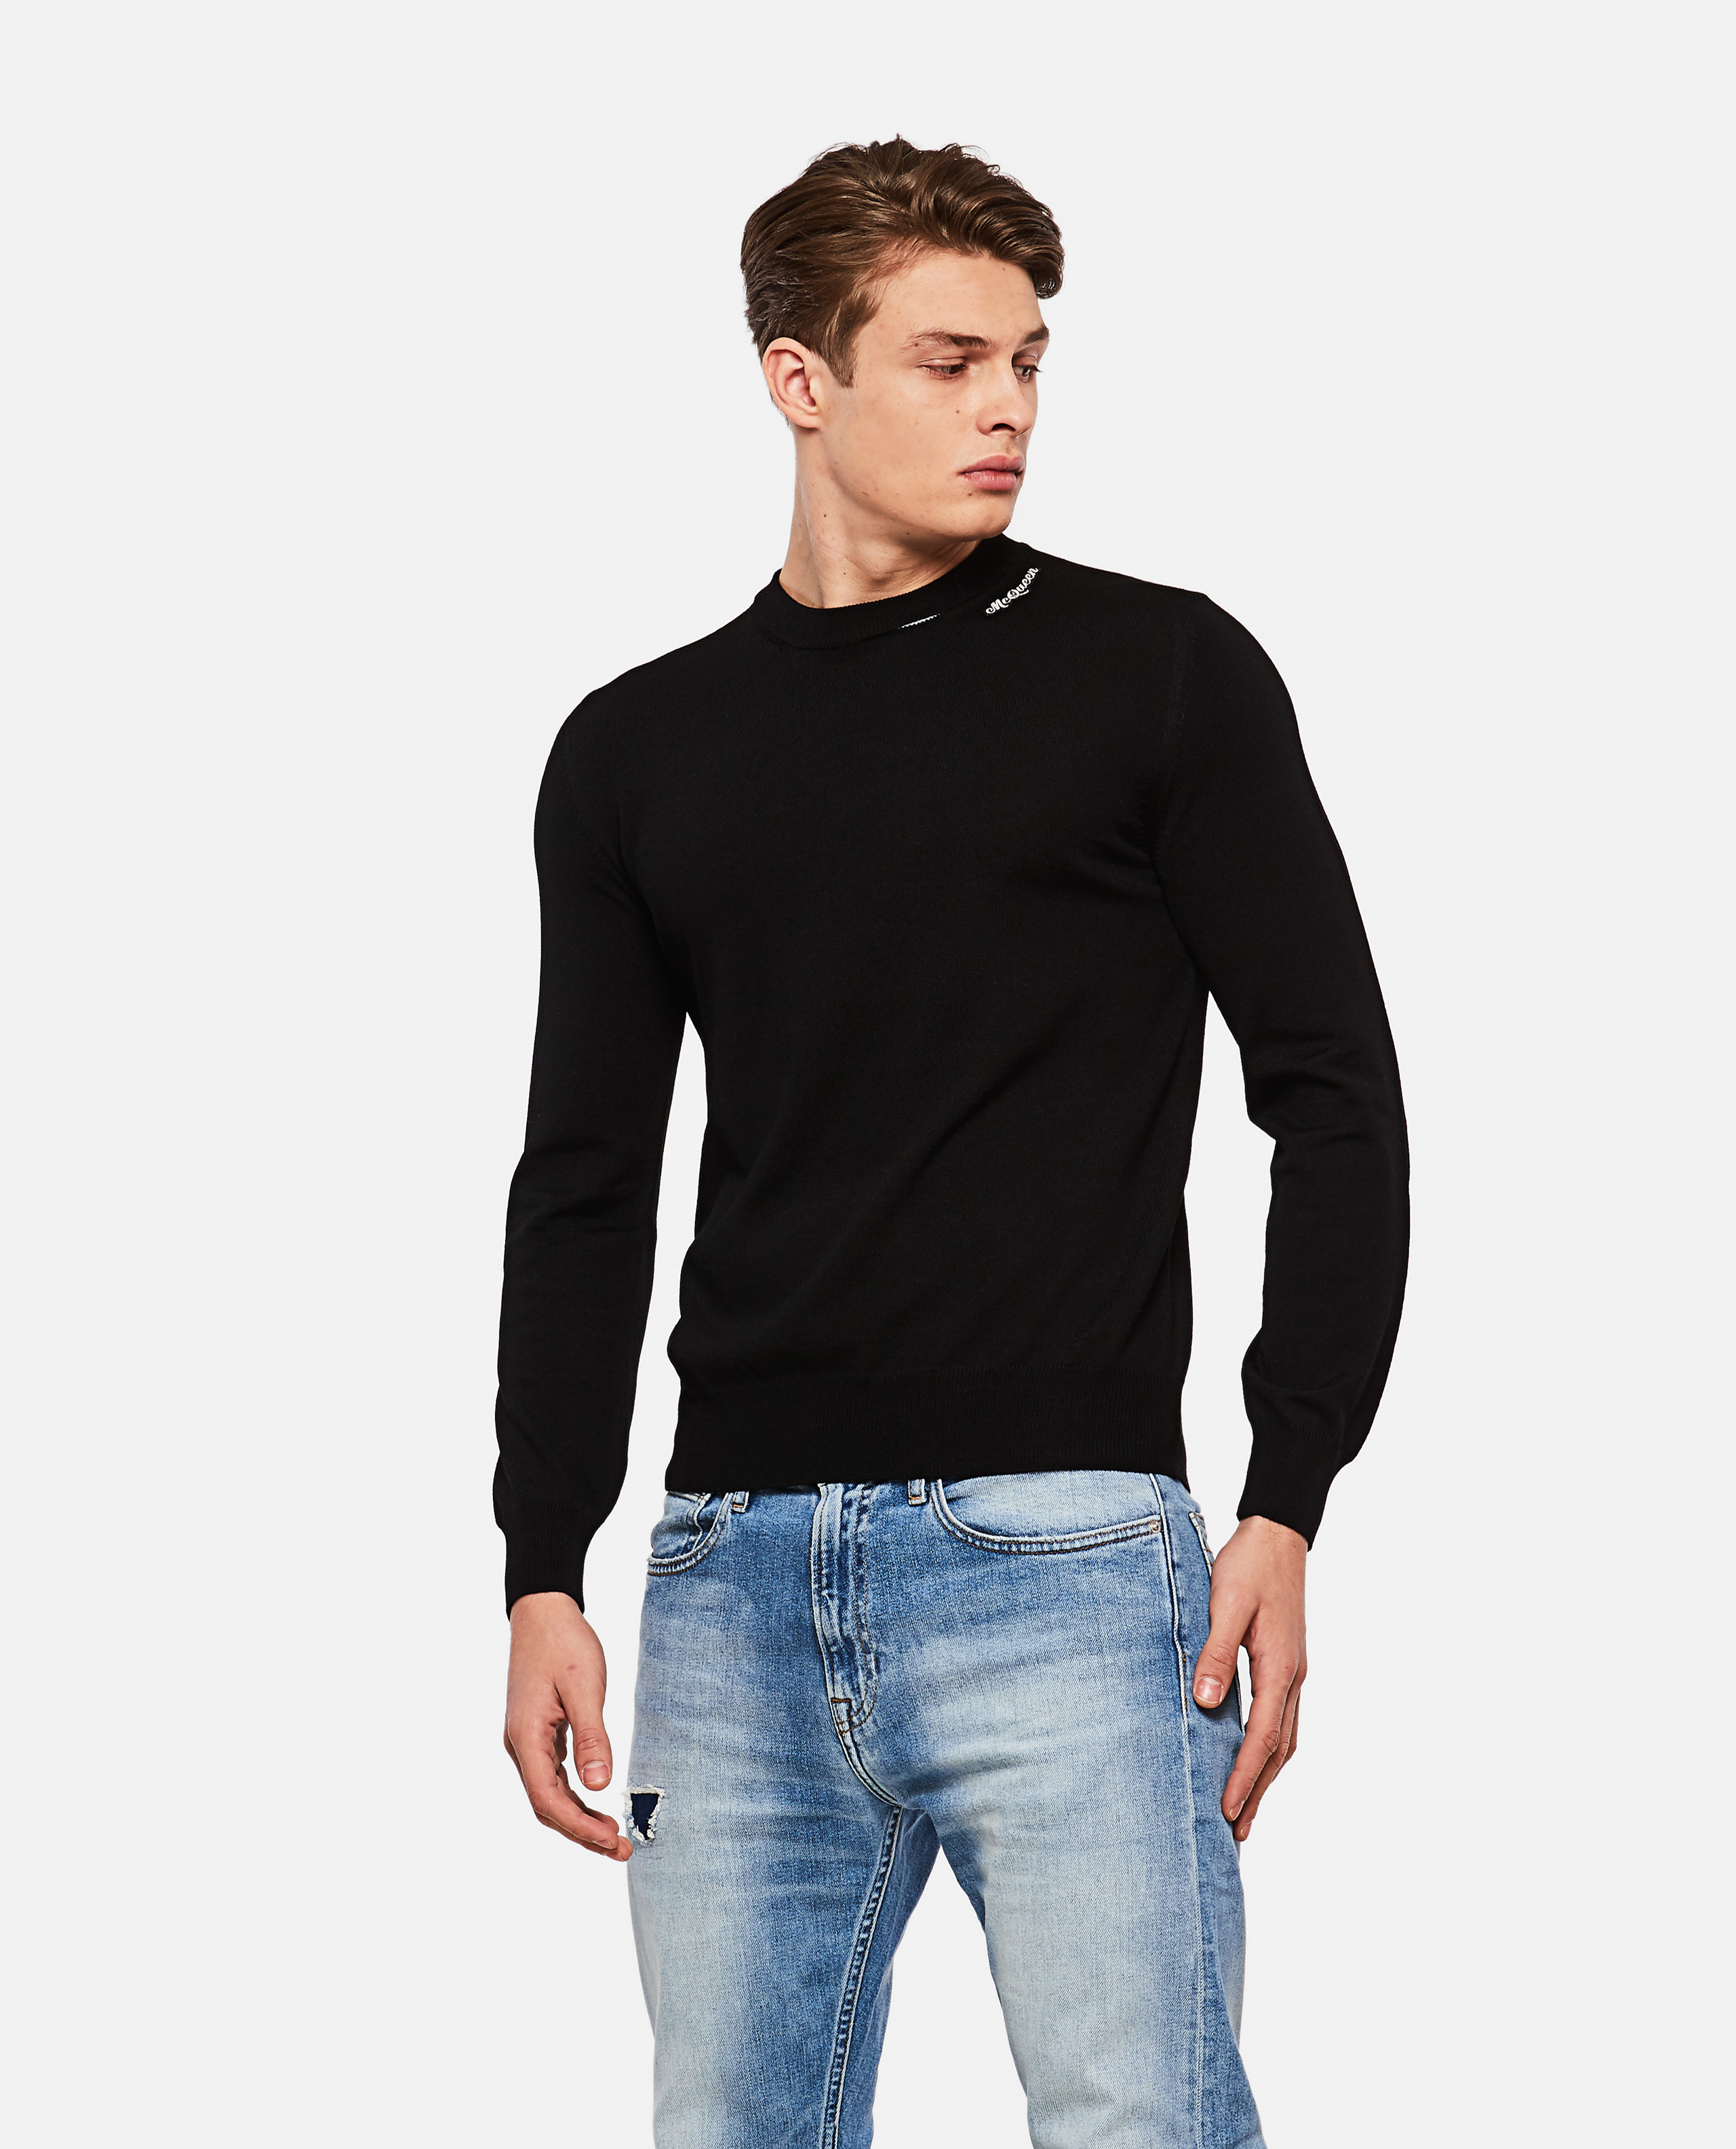 Wool pullover with embroidered logo patch